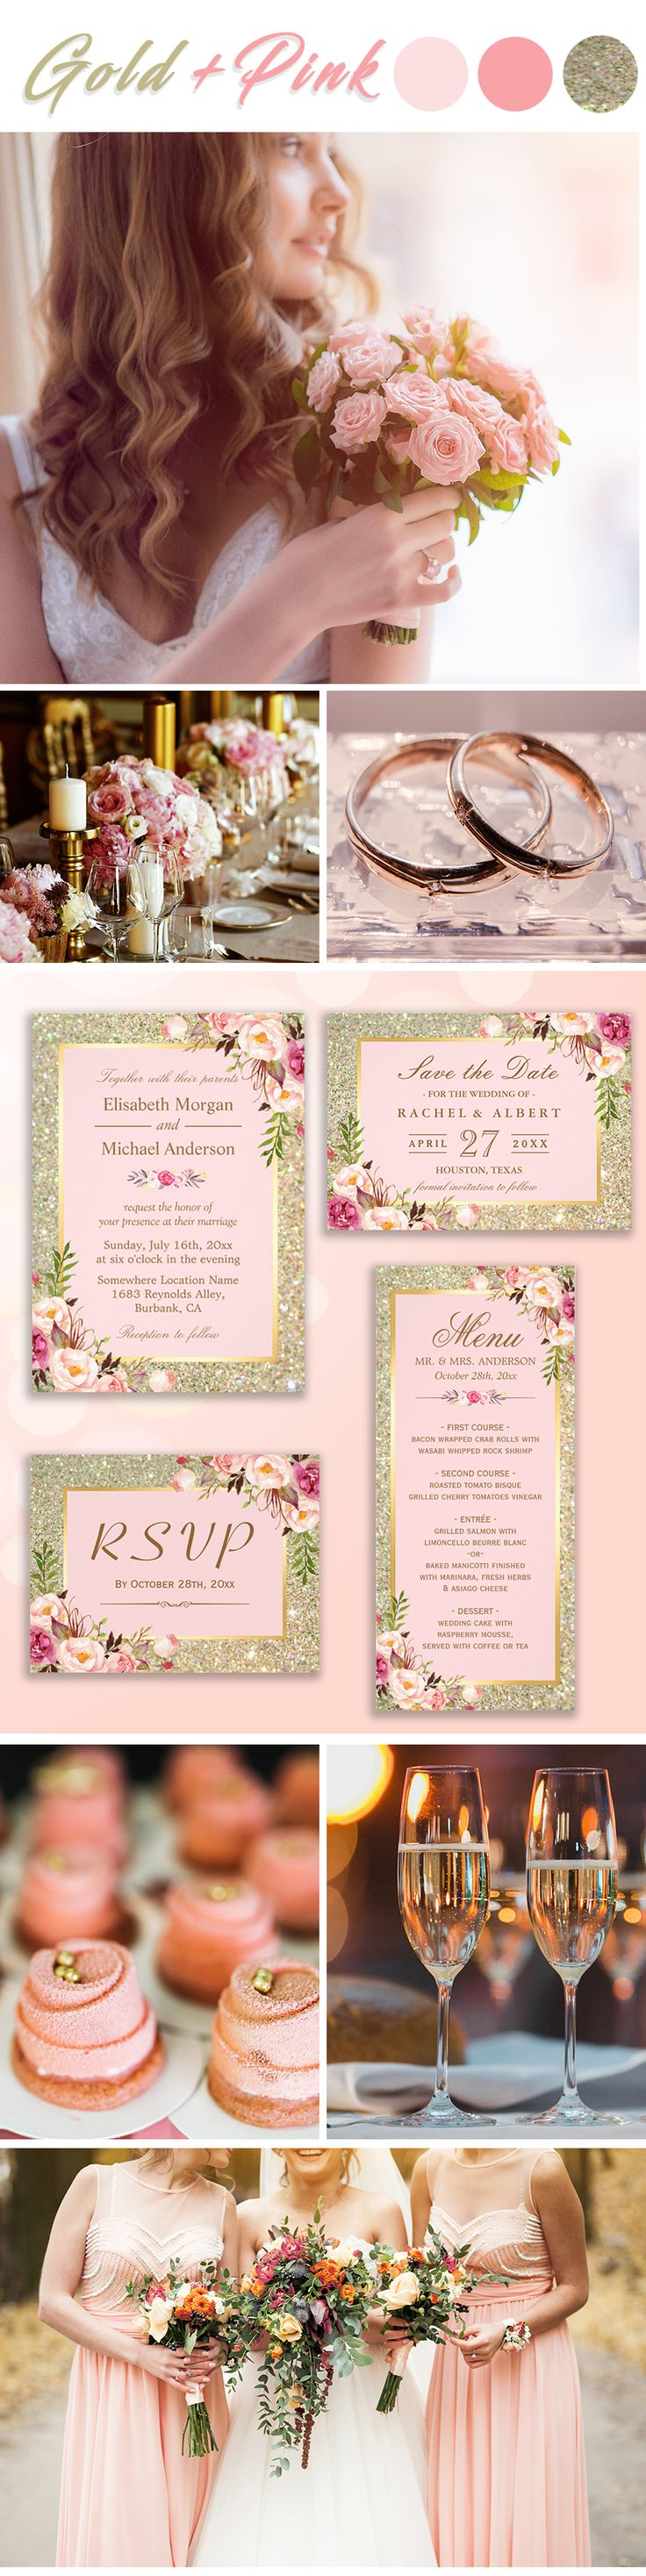 free online printable wedding thank you cards%0A A Gold Glitters Blush Pink Floral Invitation Suite  with items from  invitation to RSVP card